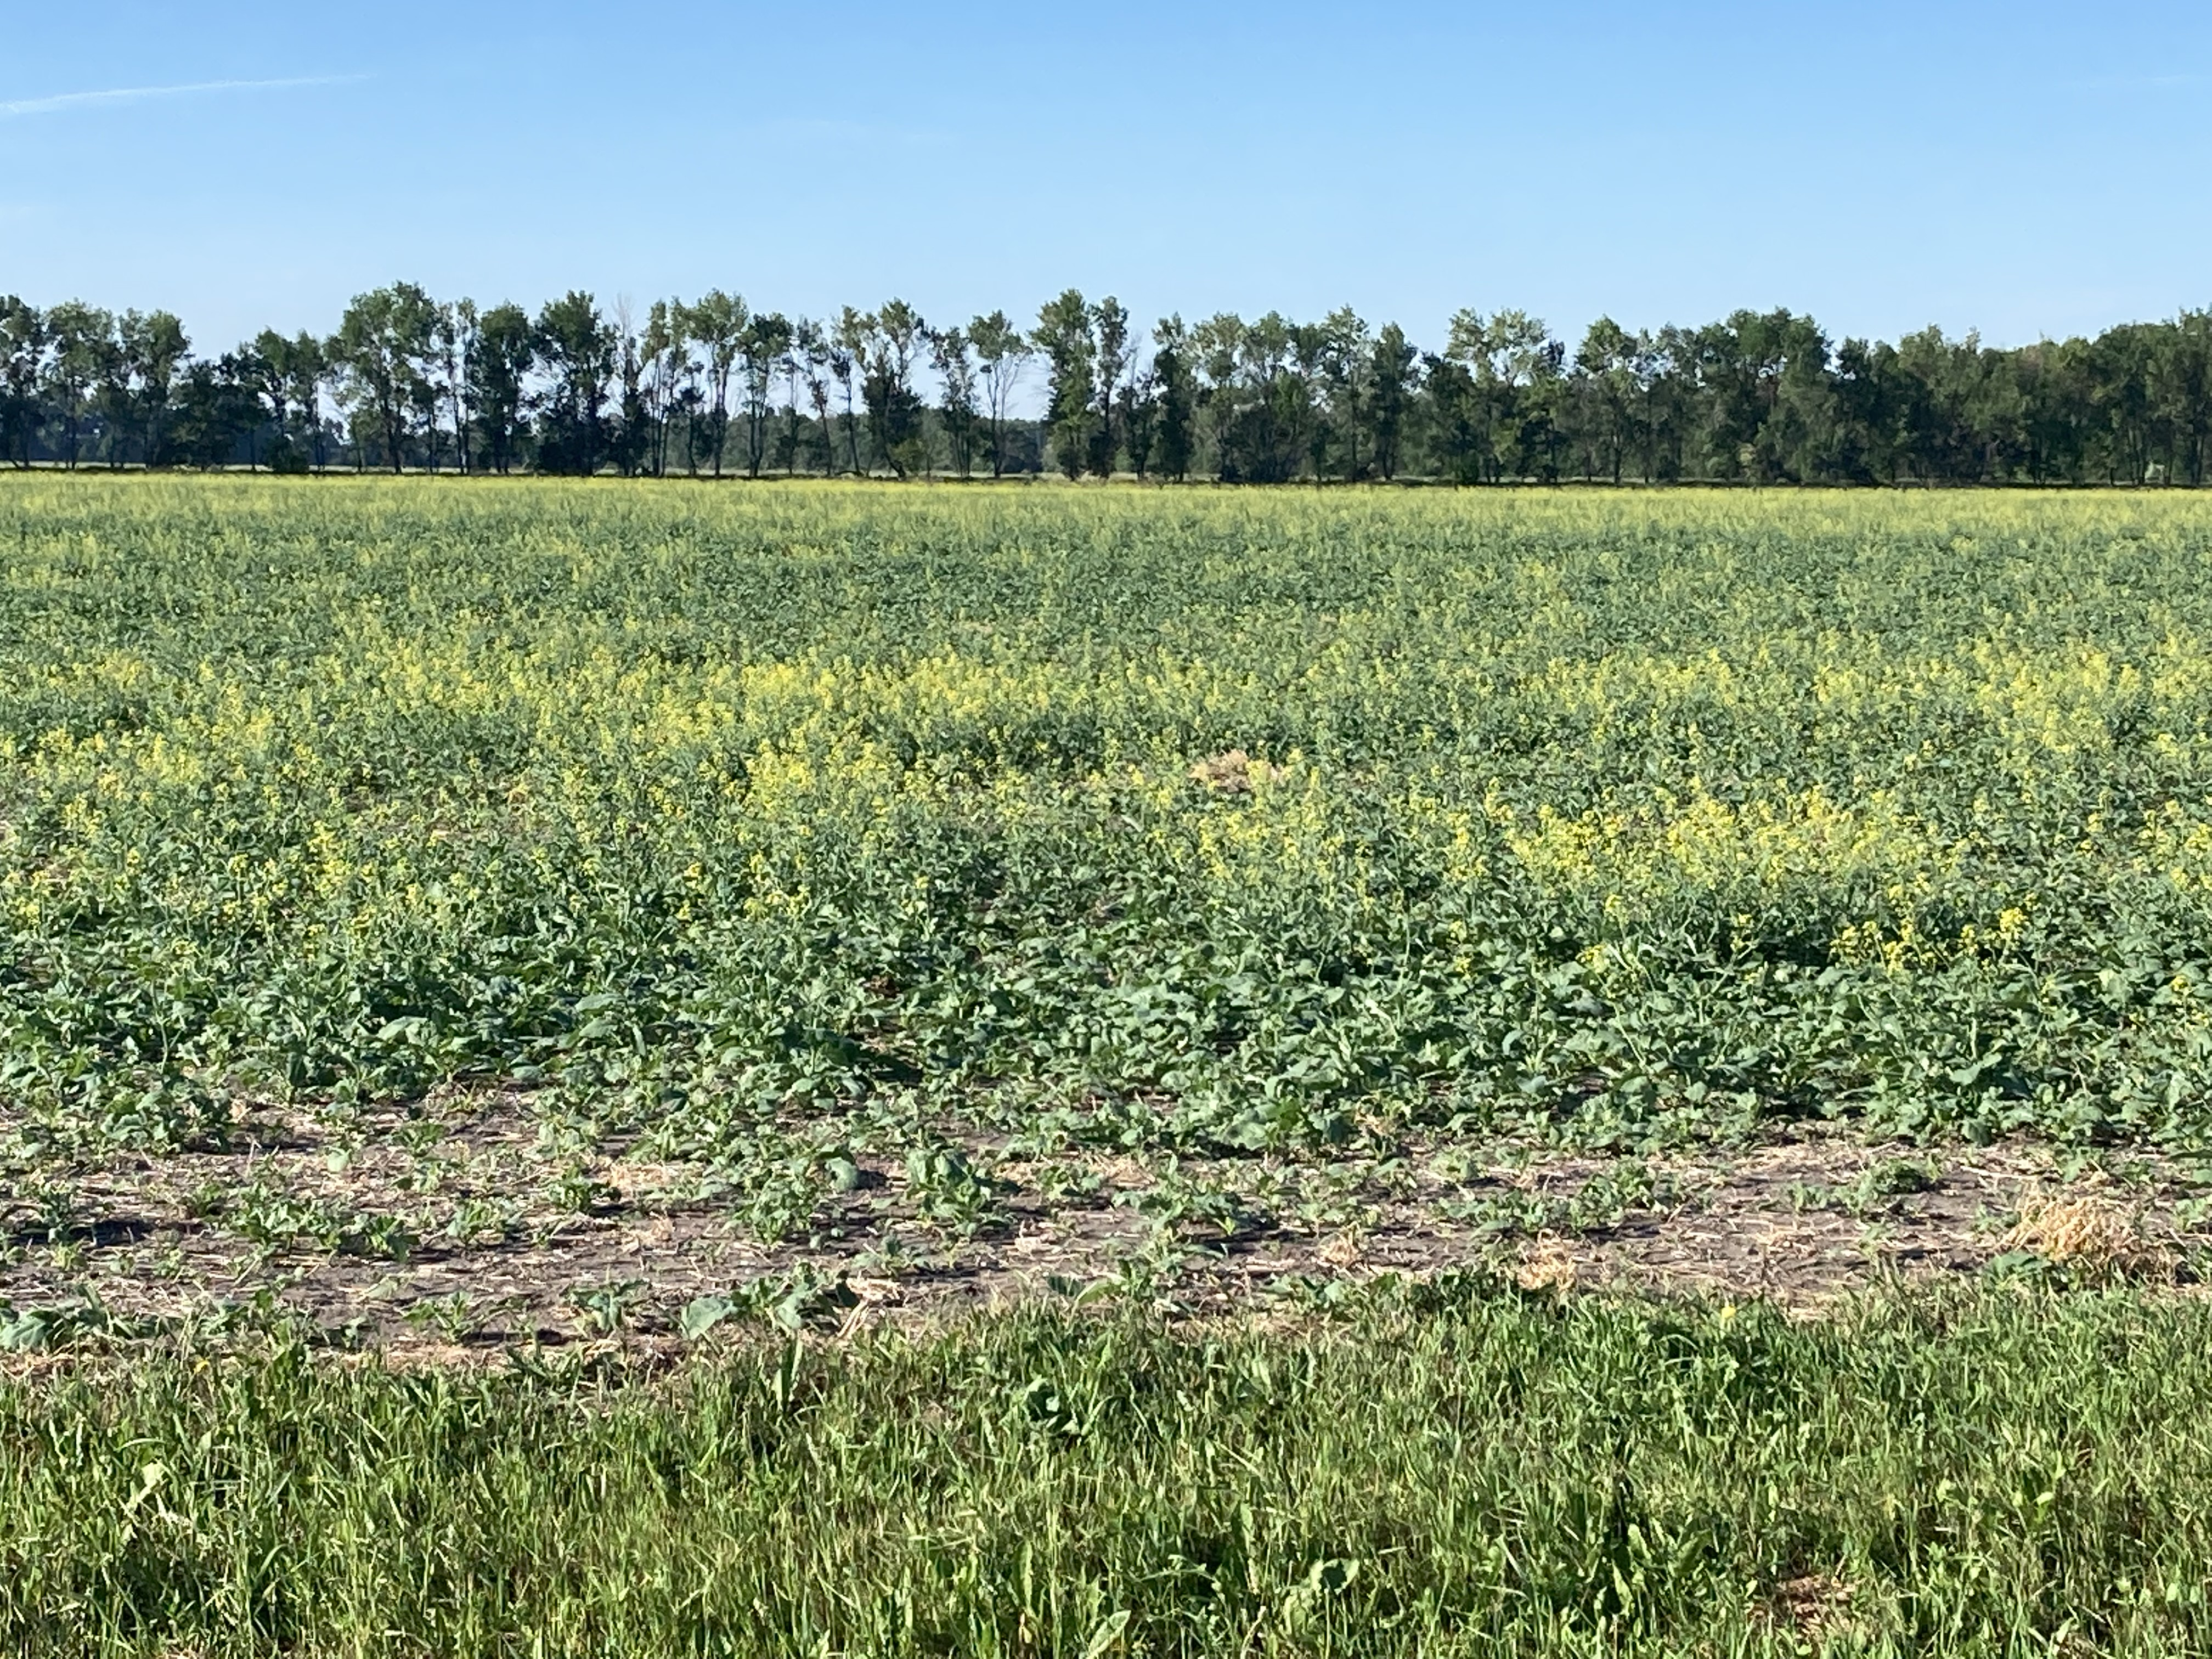 While it is important to be aware of risks associated with feeding canola forage, it may provide an alternate forage option for drought-stricken livestock producers. (NDSU photo)